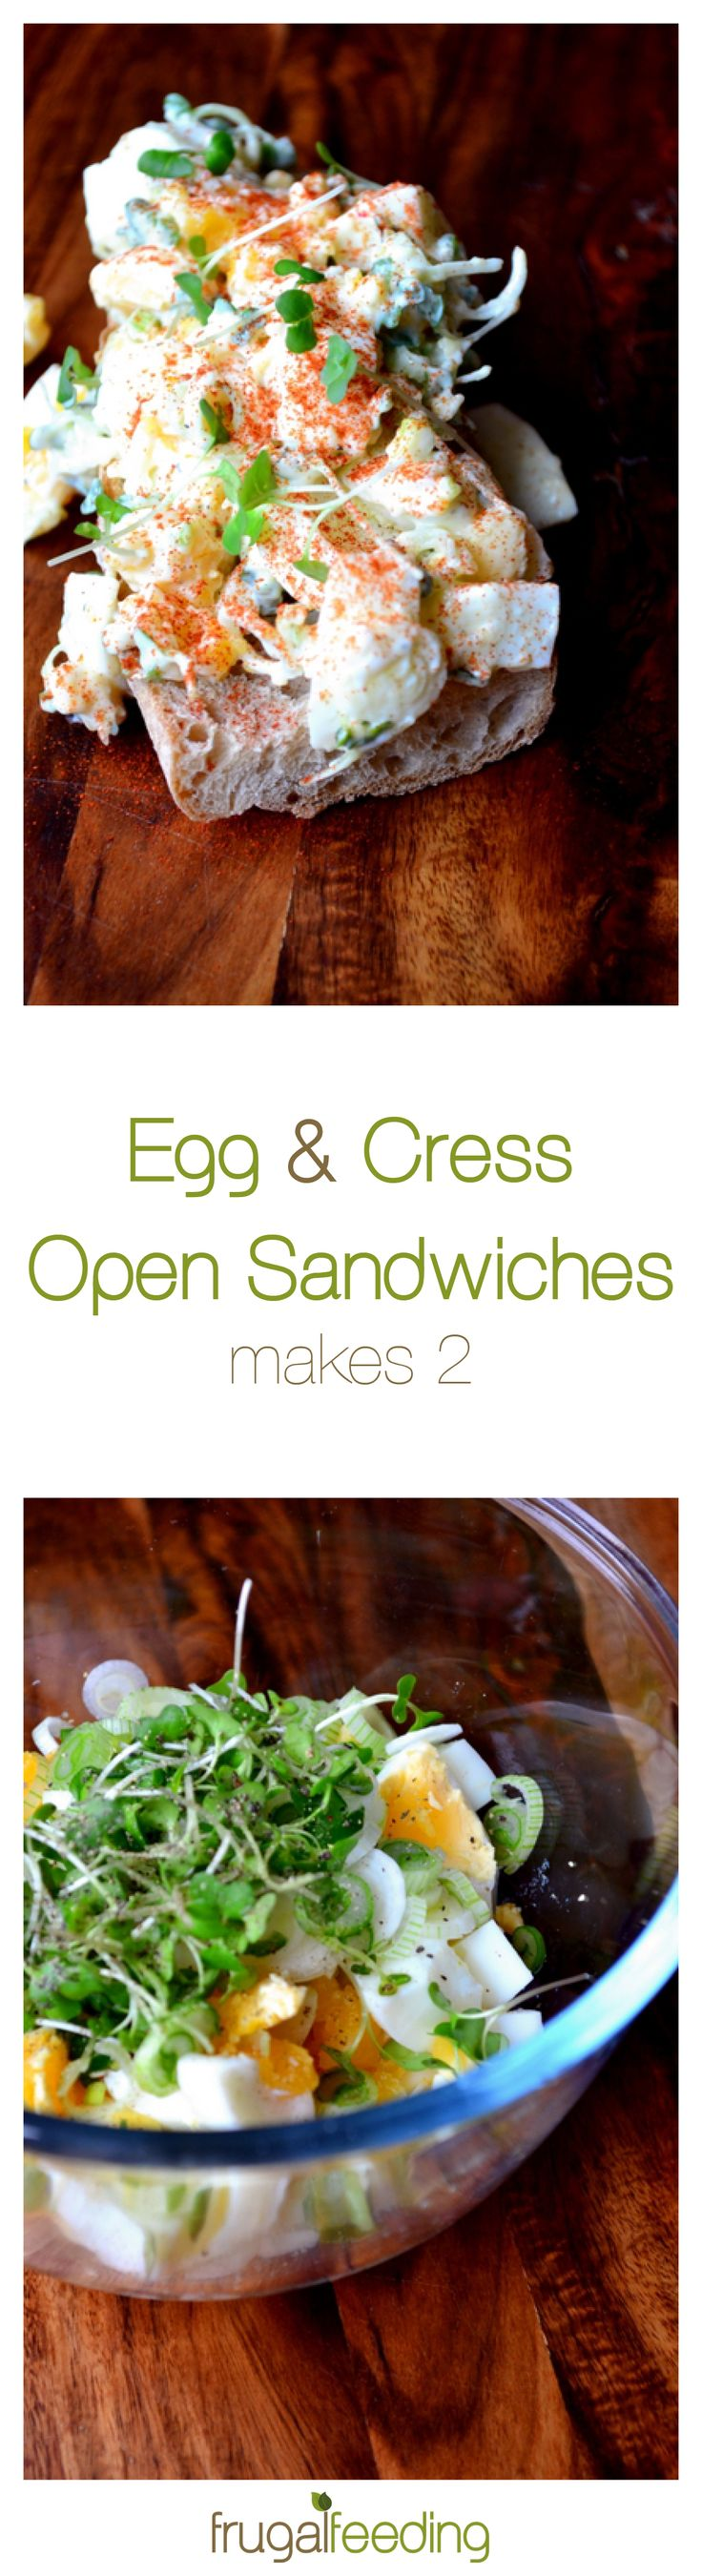 Lunch doesn't get better than Egg & Cress Sandwiches. These go one better. Made with medium-soft boiled eggs and flavoured with cress, paprika and spring onions, lunch will never be the same again